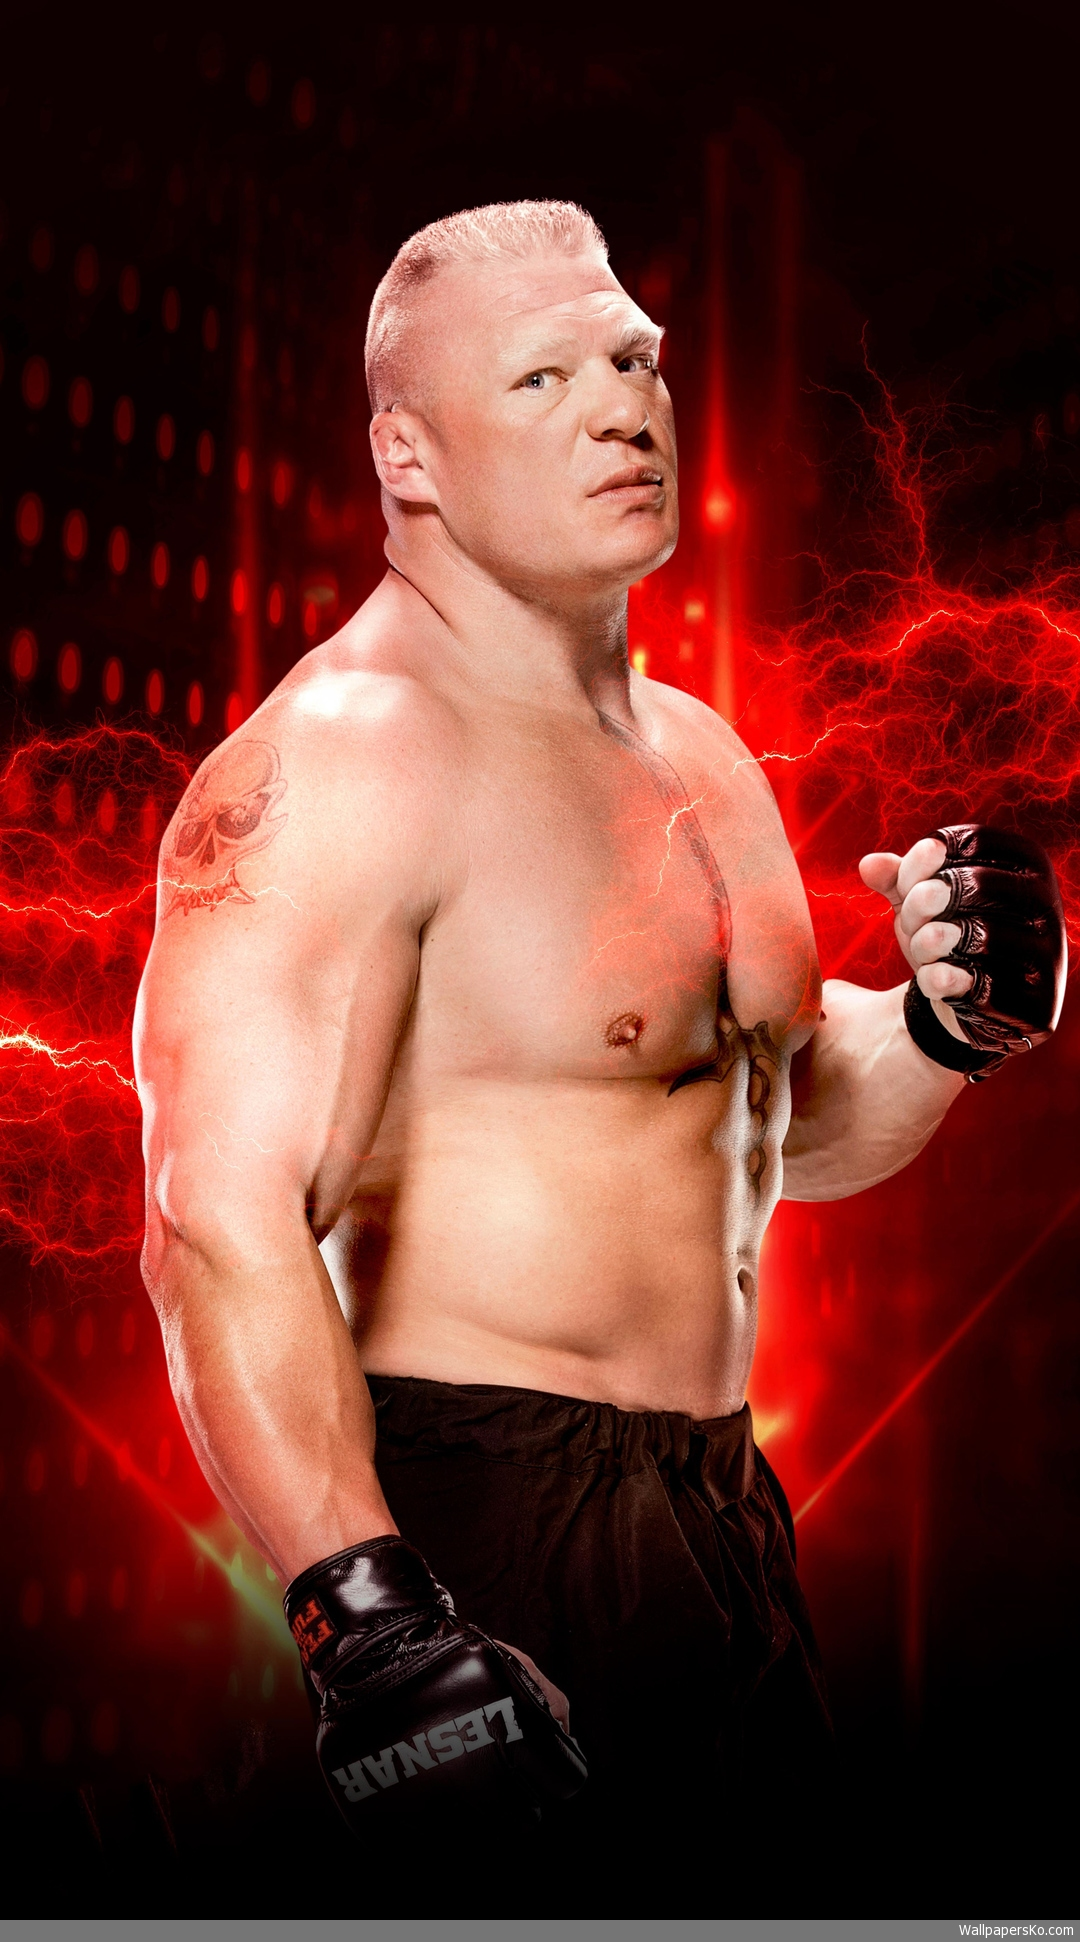 brock lesnar hd wallpaper mobile wwe